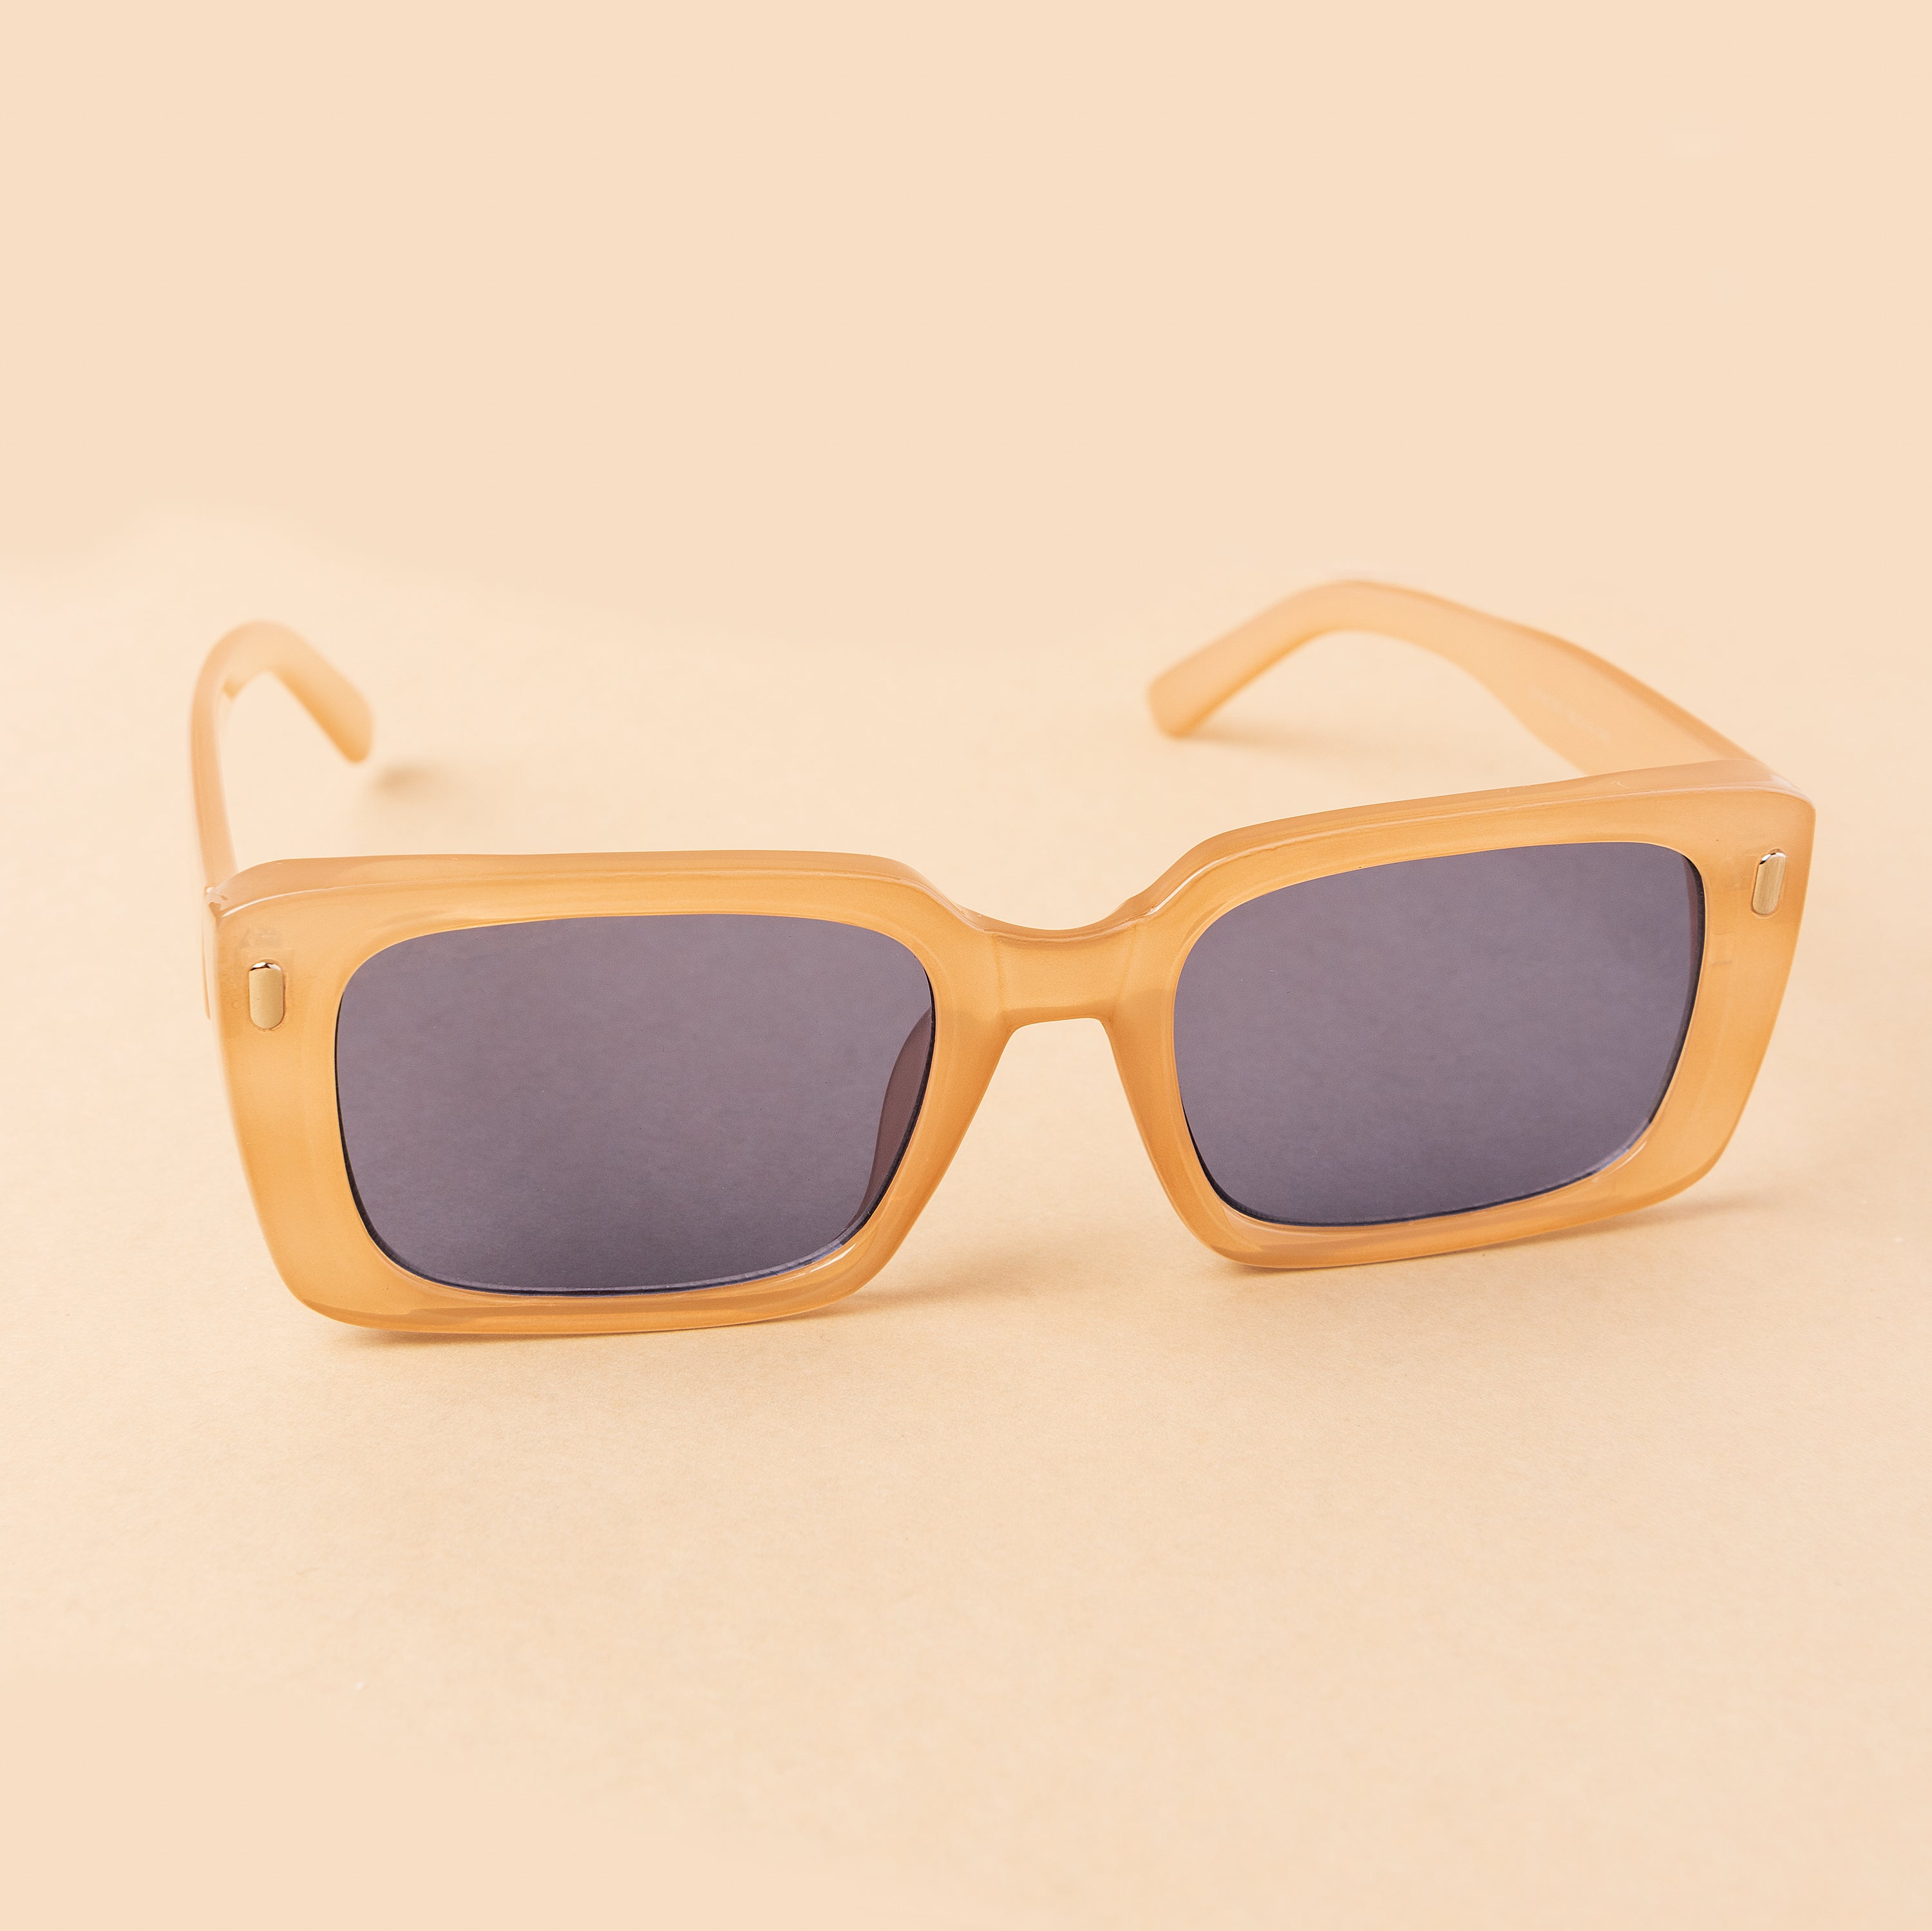 Girl Next Door Sunglasses - Beige